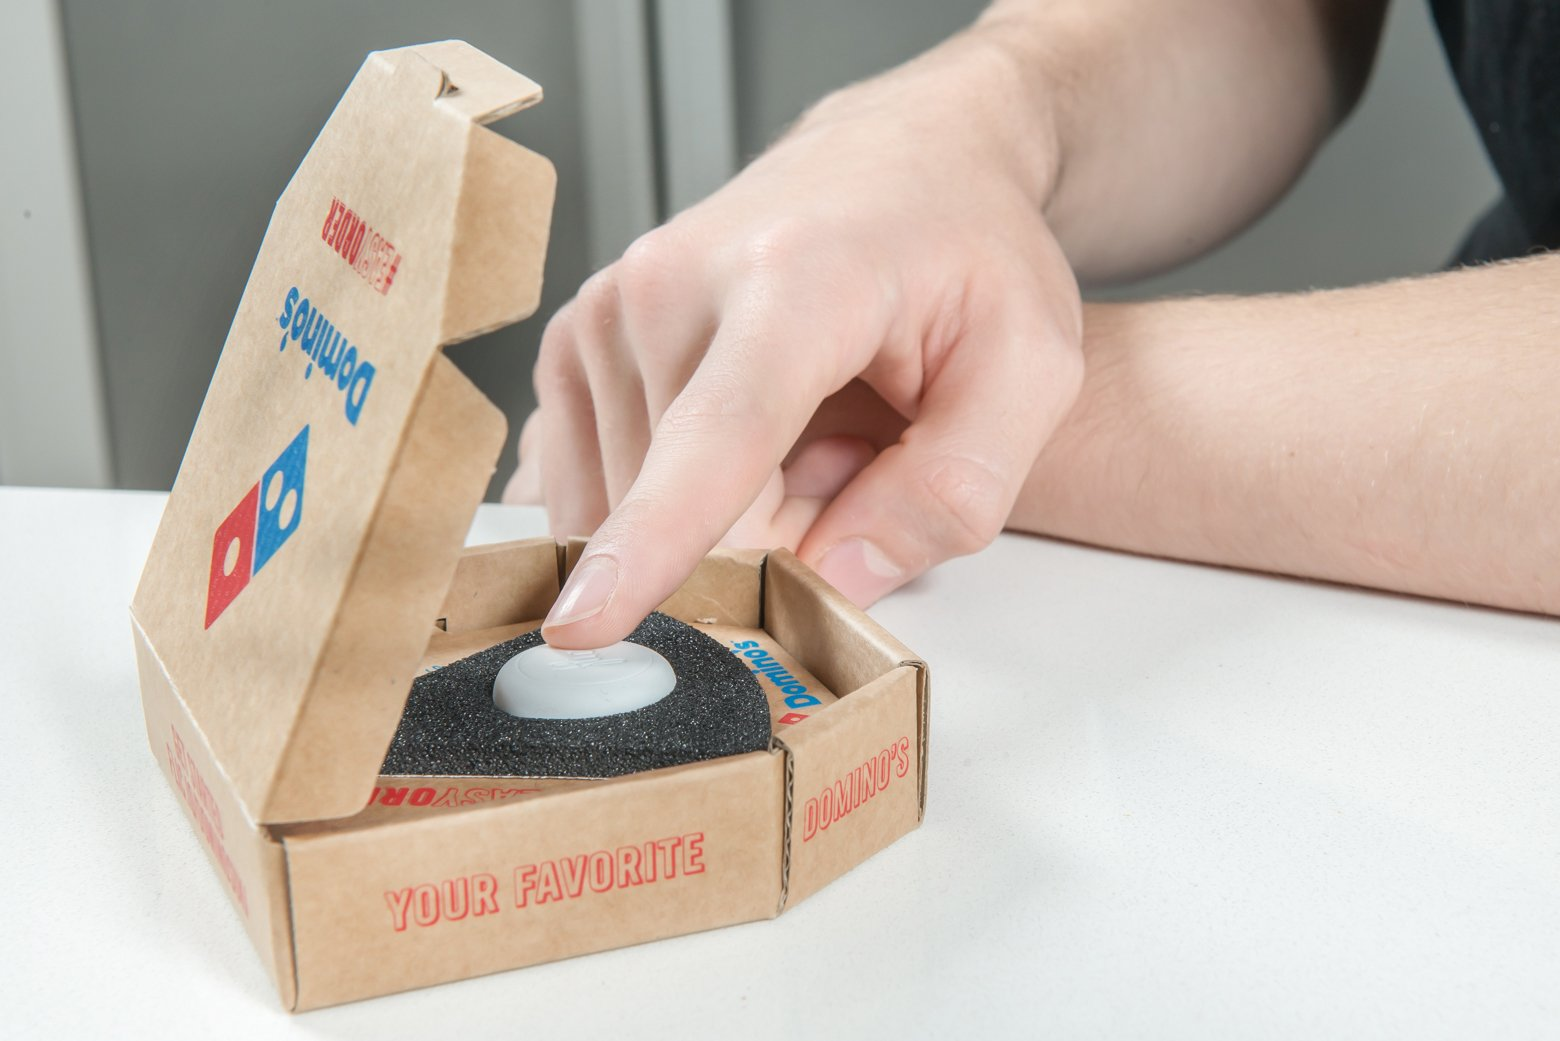 Domino's launches The Limited Edition Easy Order button allowing pizza lovers to order their favourite pizza straight to their door at the touch of a button.